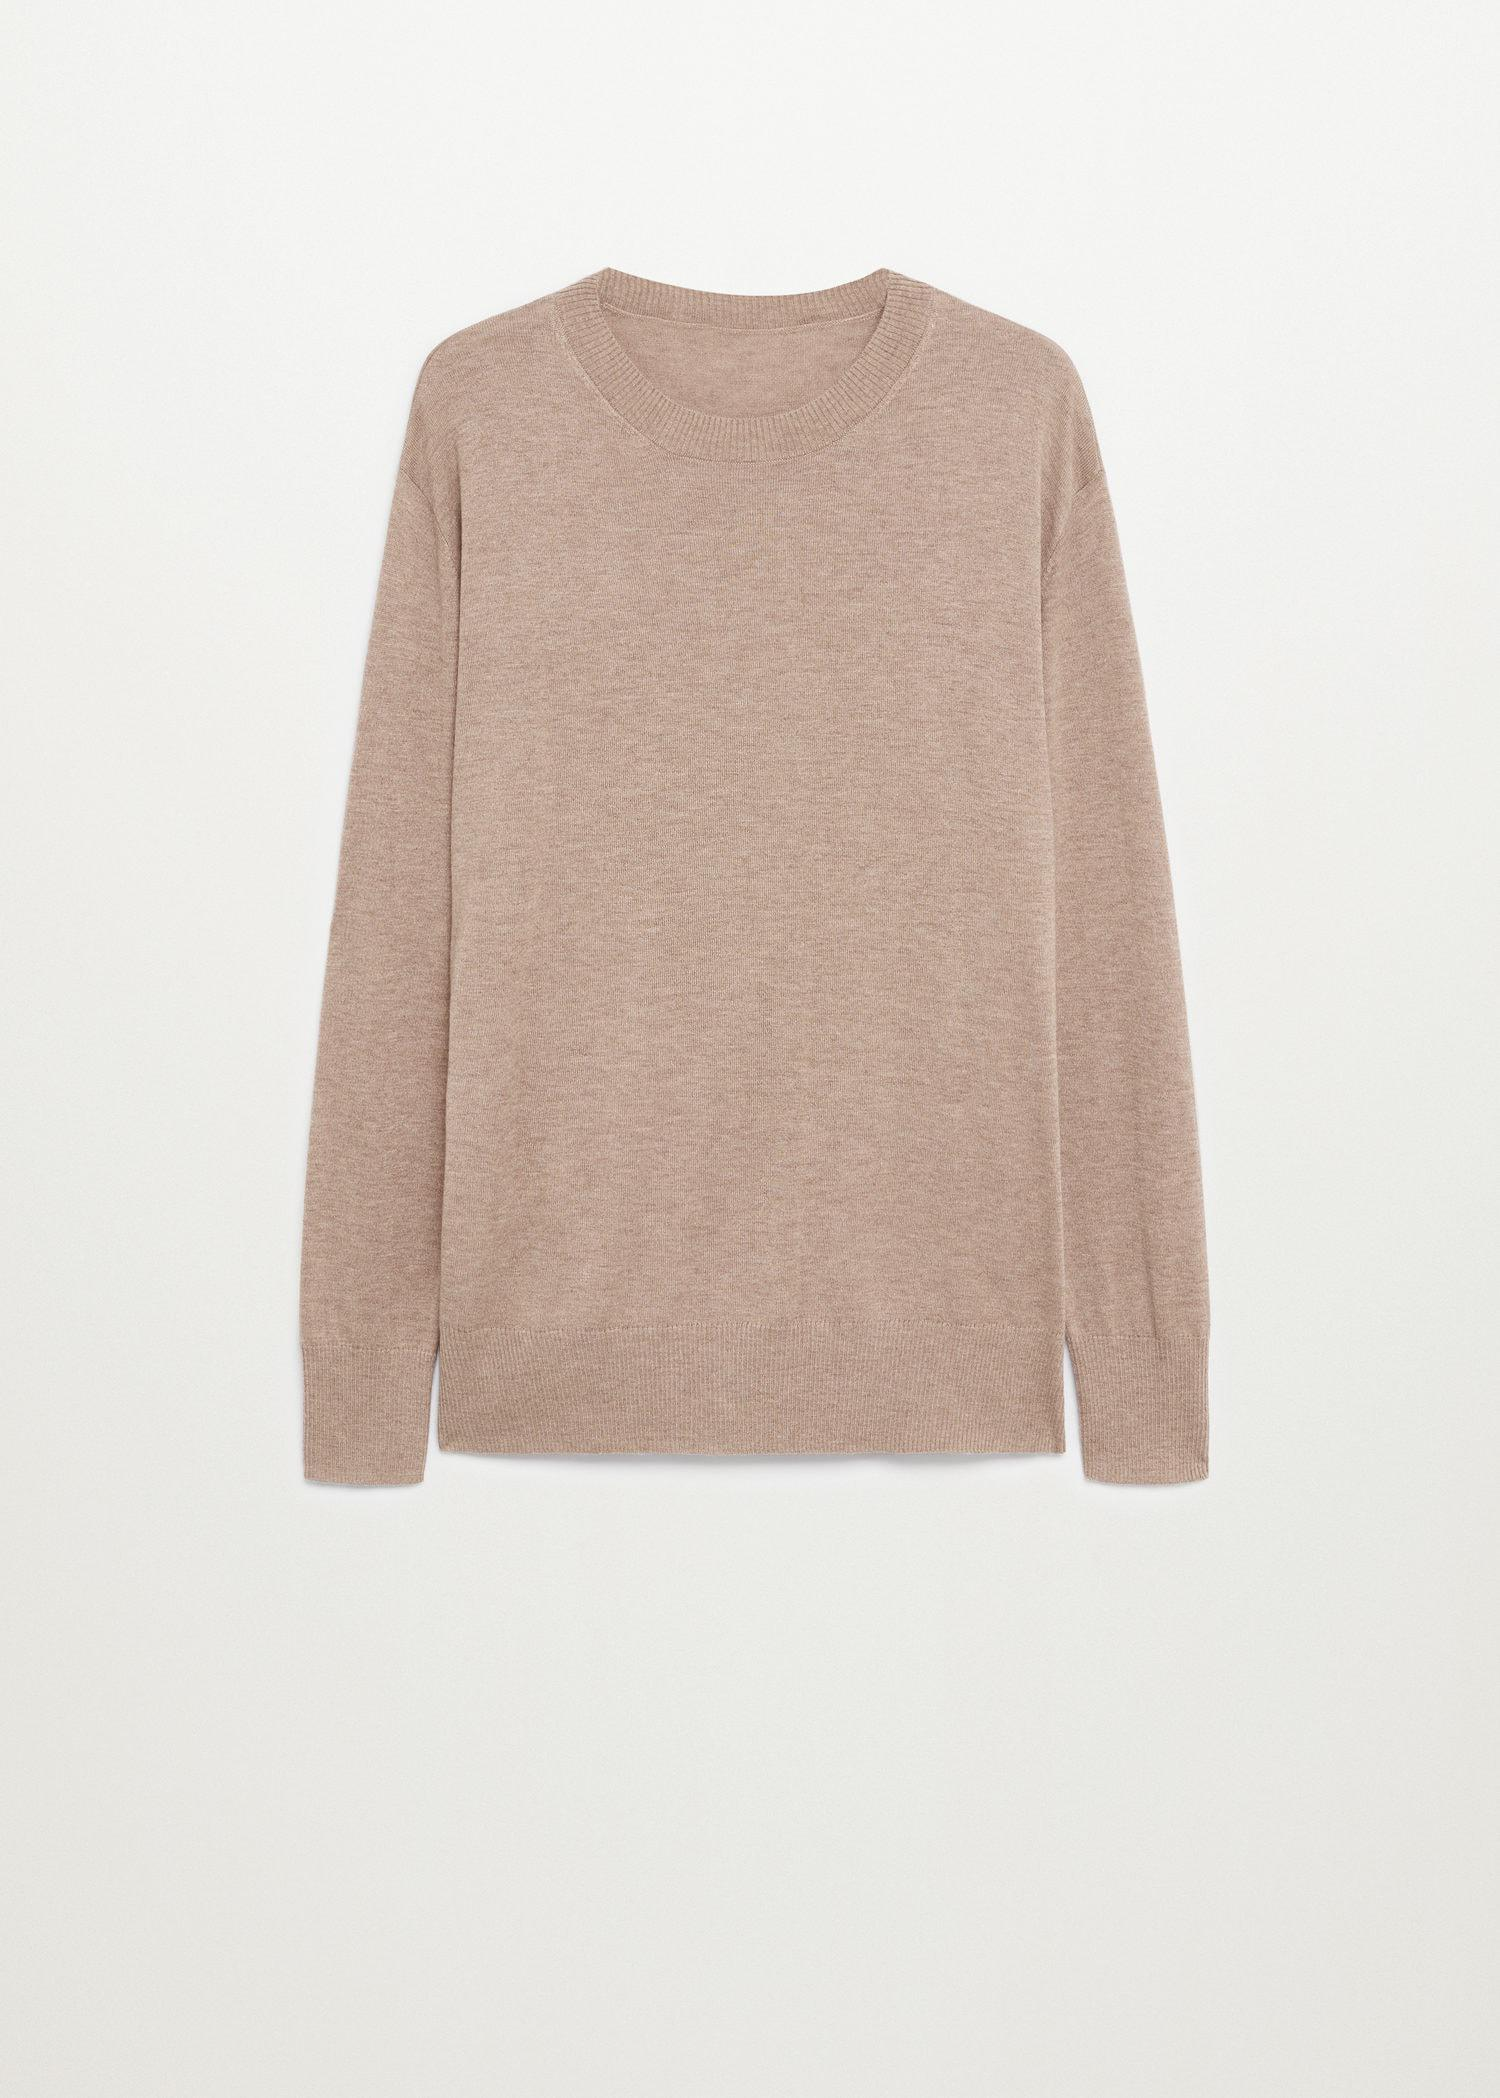 Cashmere jersey 7